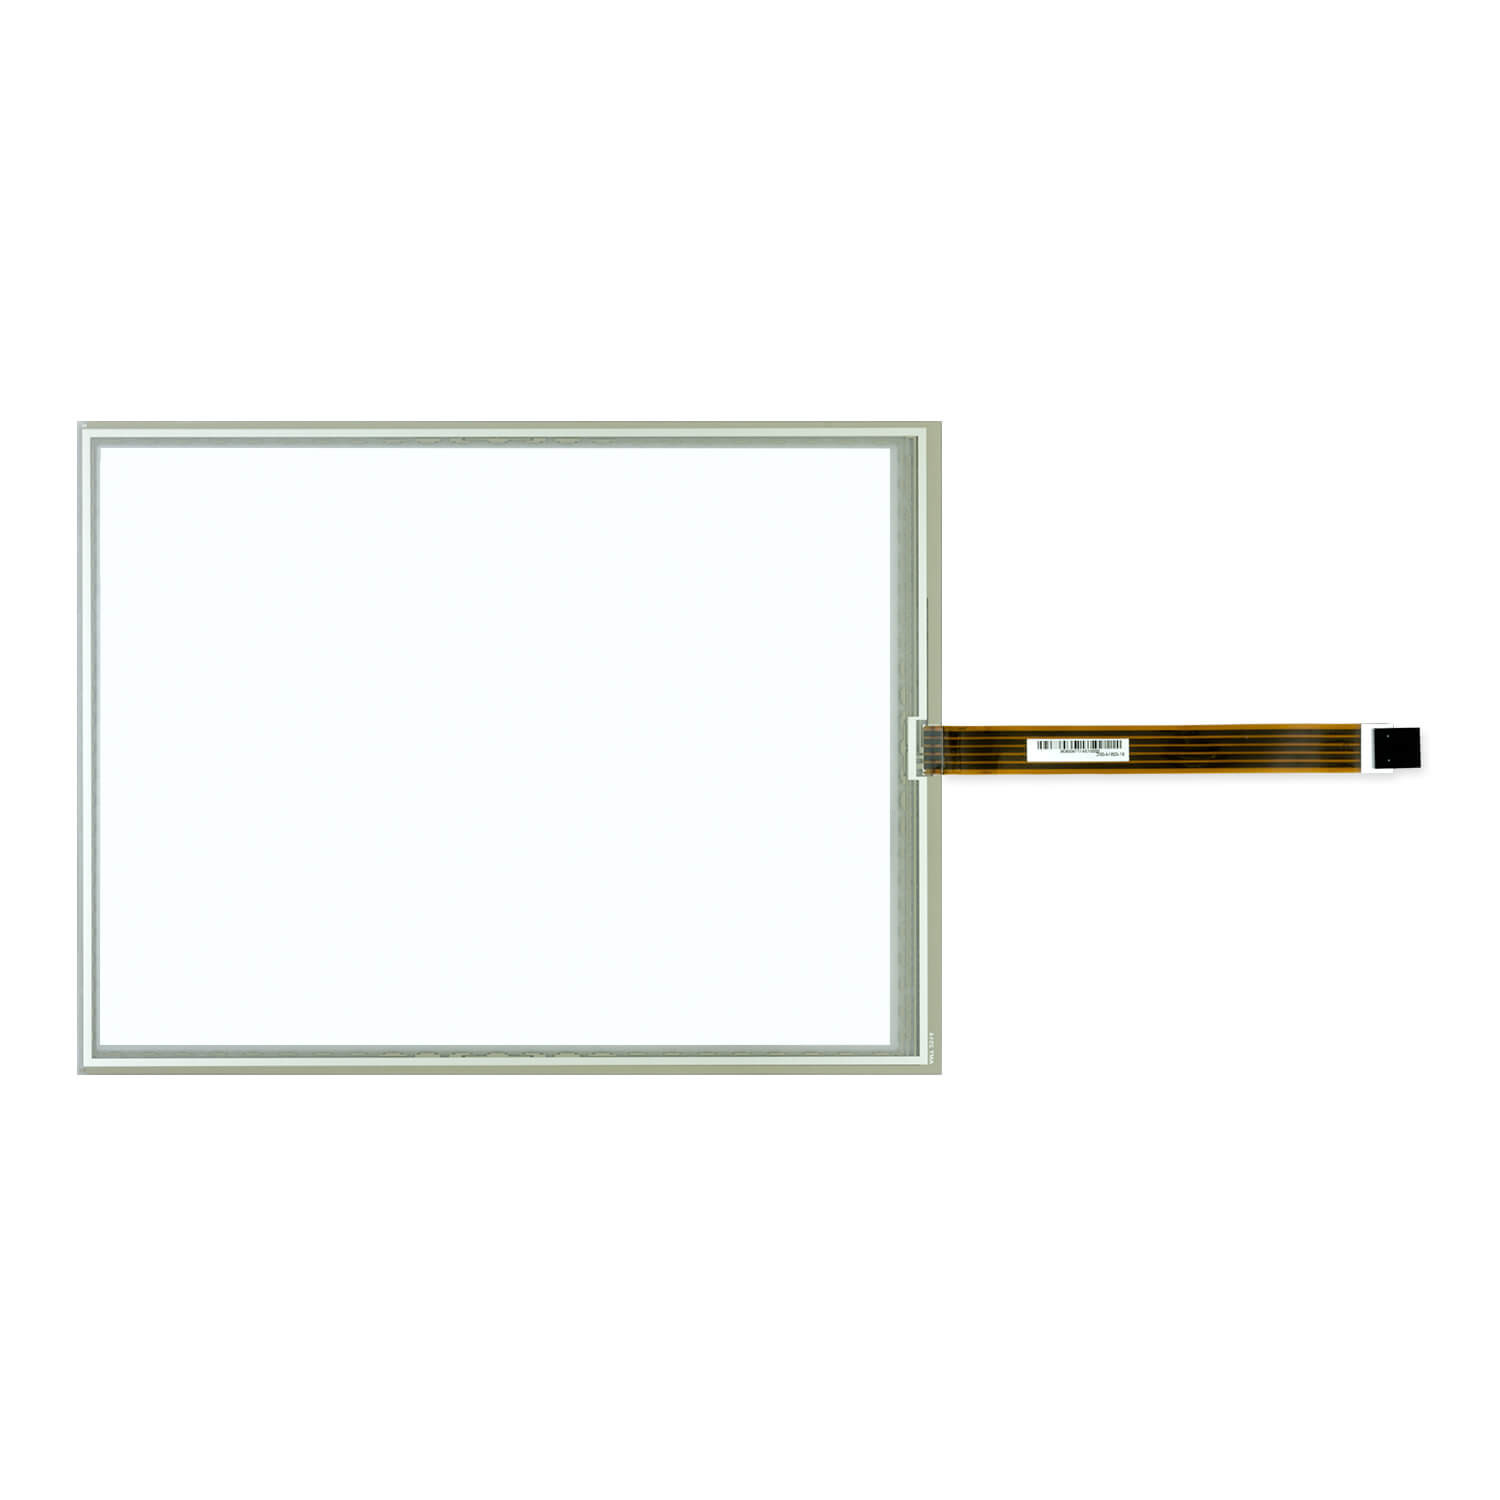 RTP12.1-5W-AMT-2514-00C - resistive touch screen (12.1-inch, 16:9 aspect ratio, 1.8 mm glass)